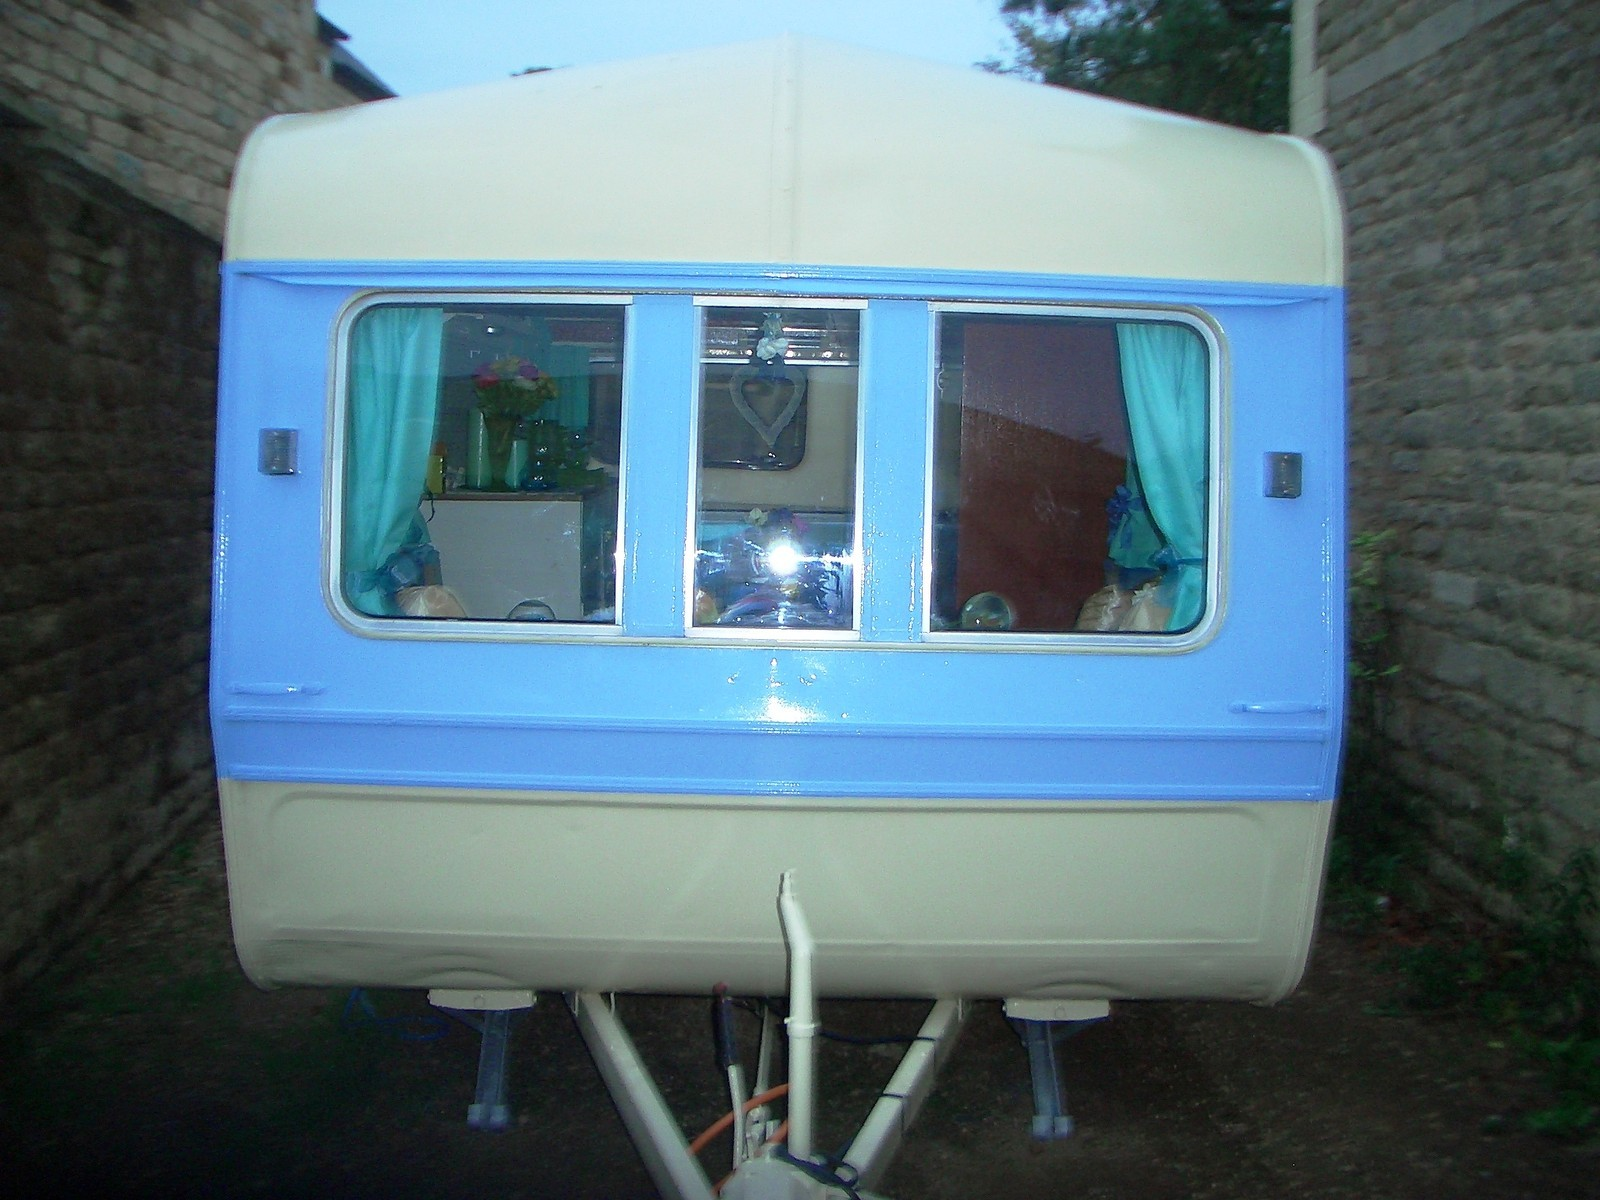 Our Original 1960's Retro Caravan - Our Home on Wheels